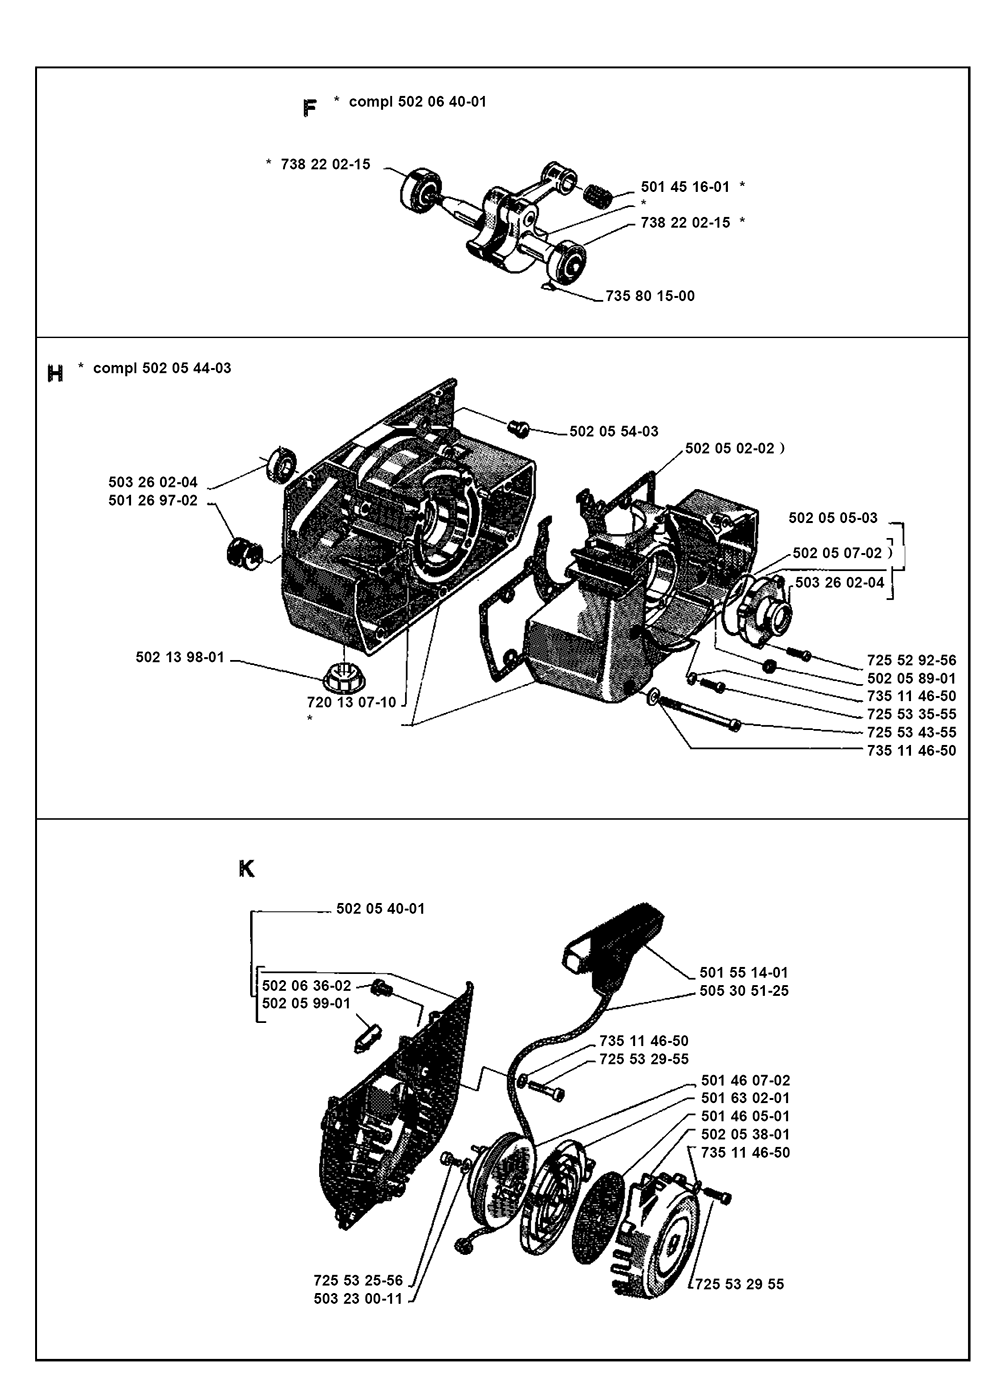 244 RX-(I8800008)-Husqvarna-PB-3Break Down